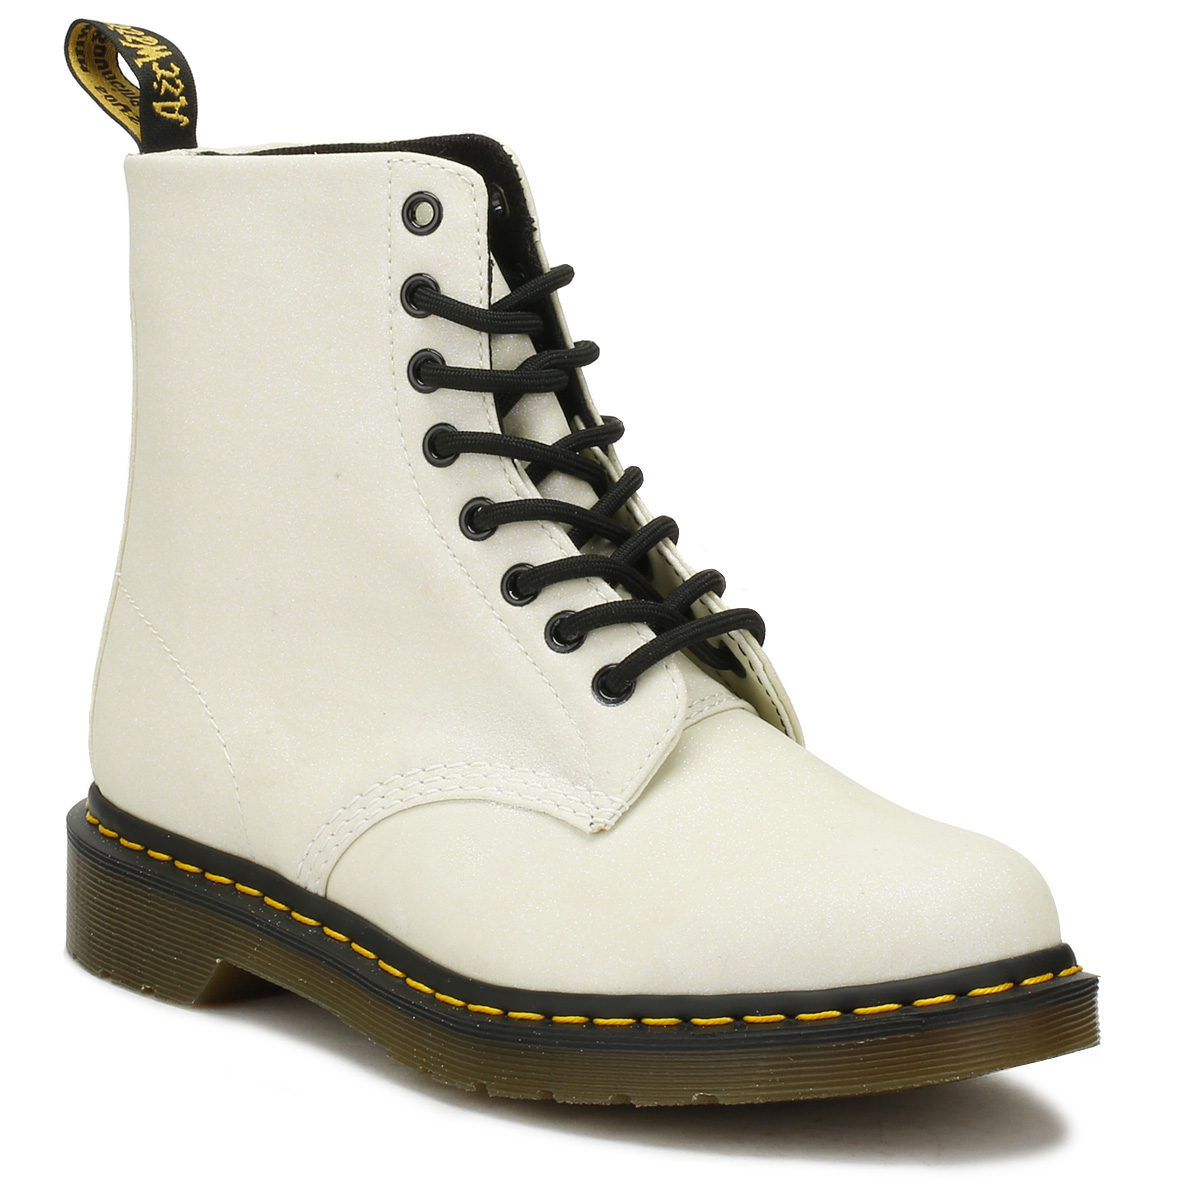 6092ebb74a Dr. Martens Womens White Glitter Pascal Boots Lace Up Leather Winter Shoes